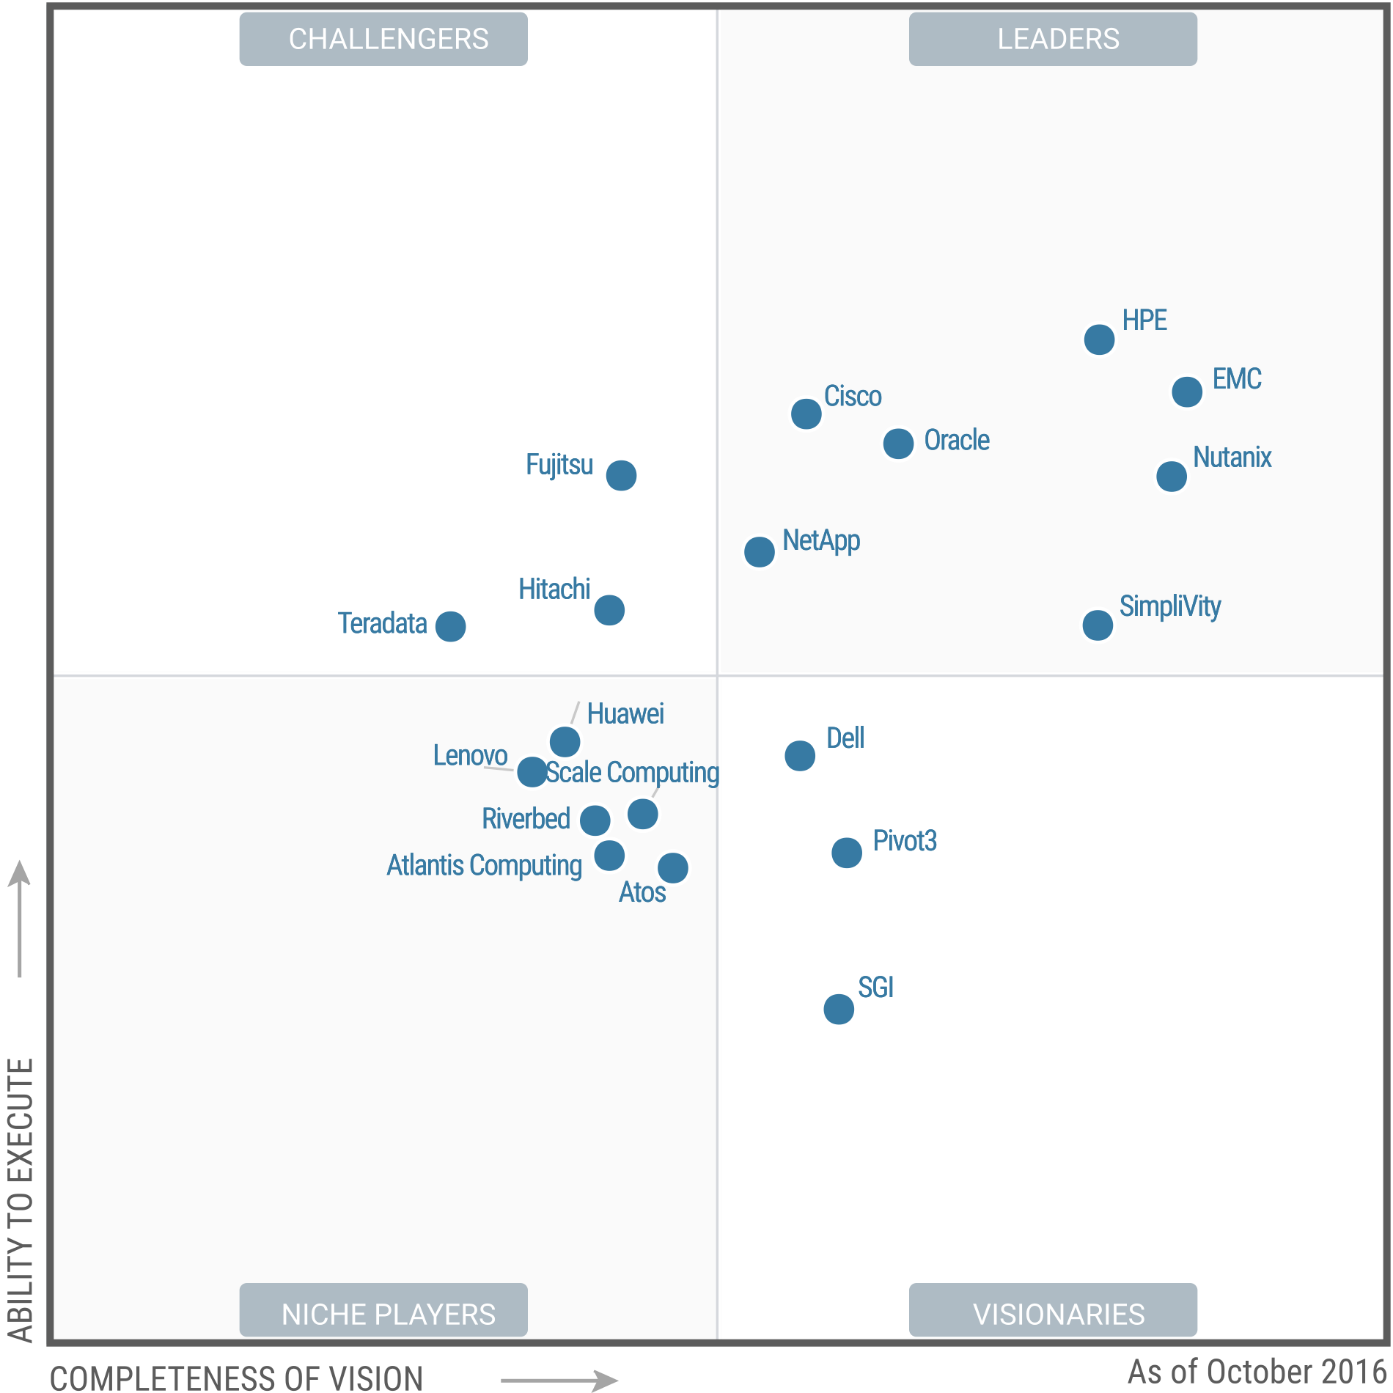 Nutanix named a leader again in the Gartner Magic Quadrant for Integrated Systems